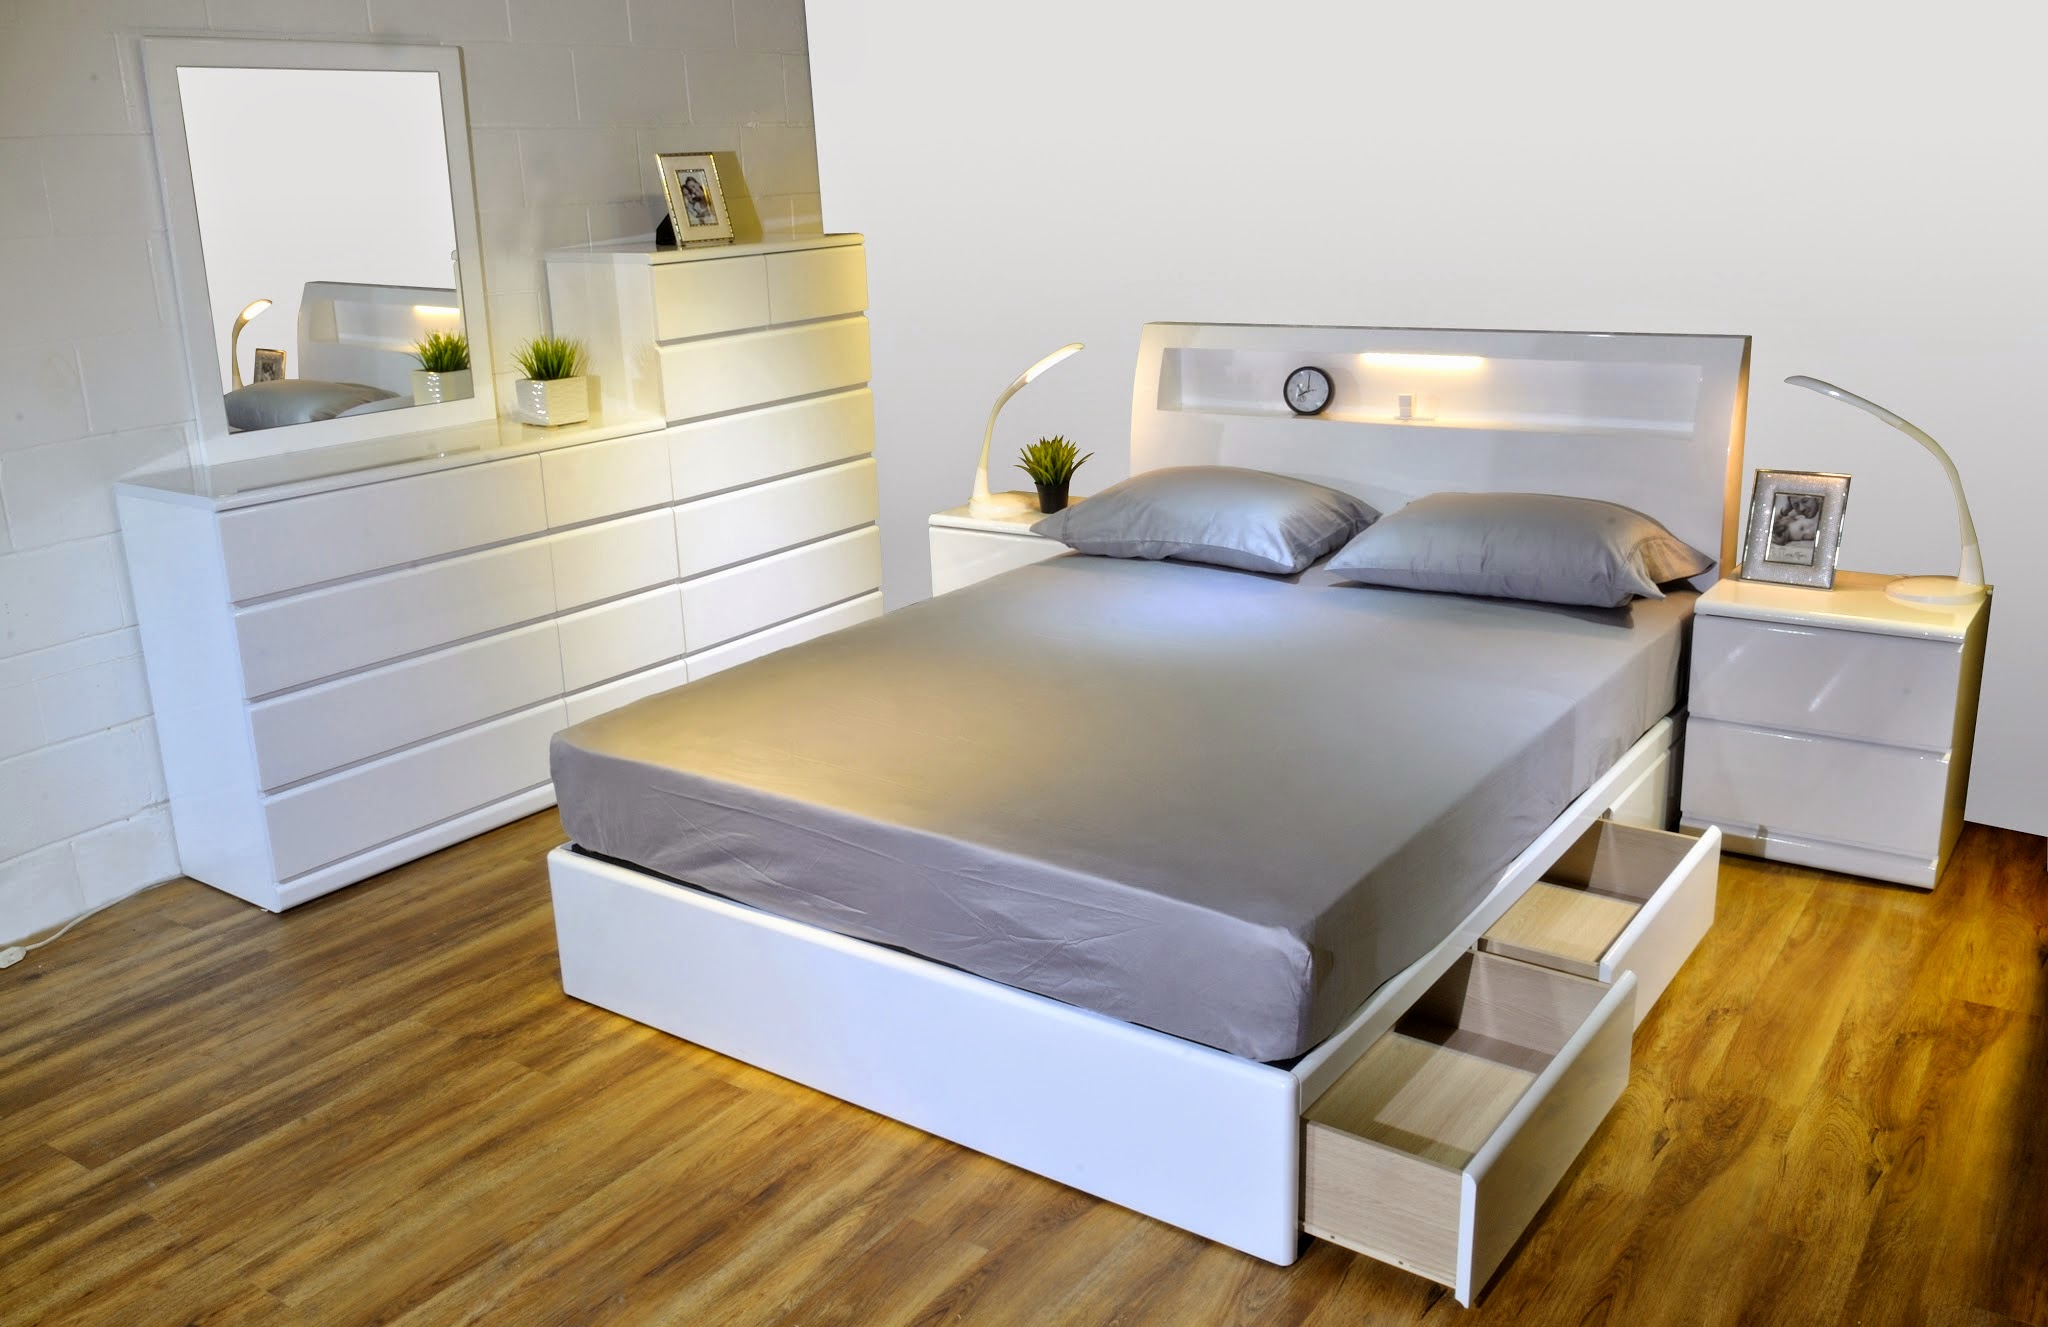 Alison Bx Glossy White Bed 现代家私 Modern Furniture